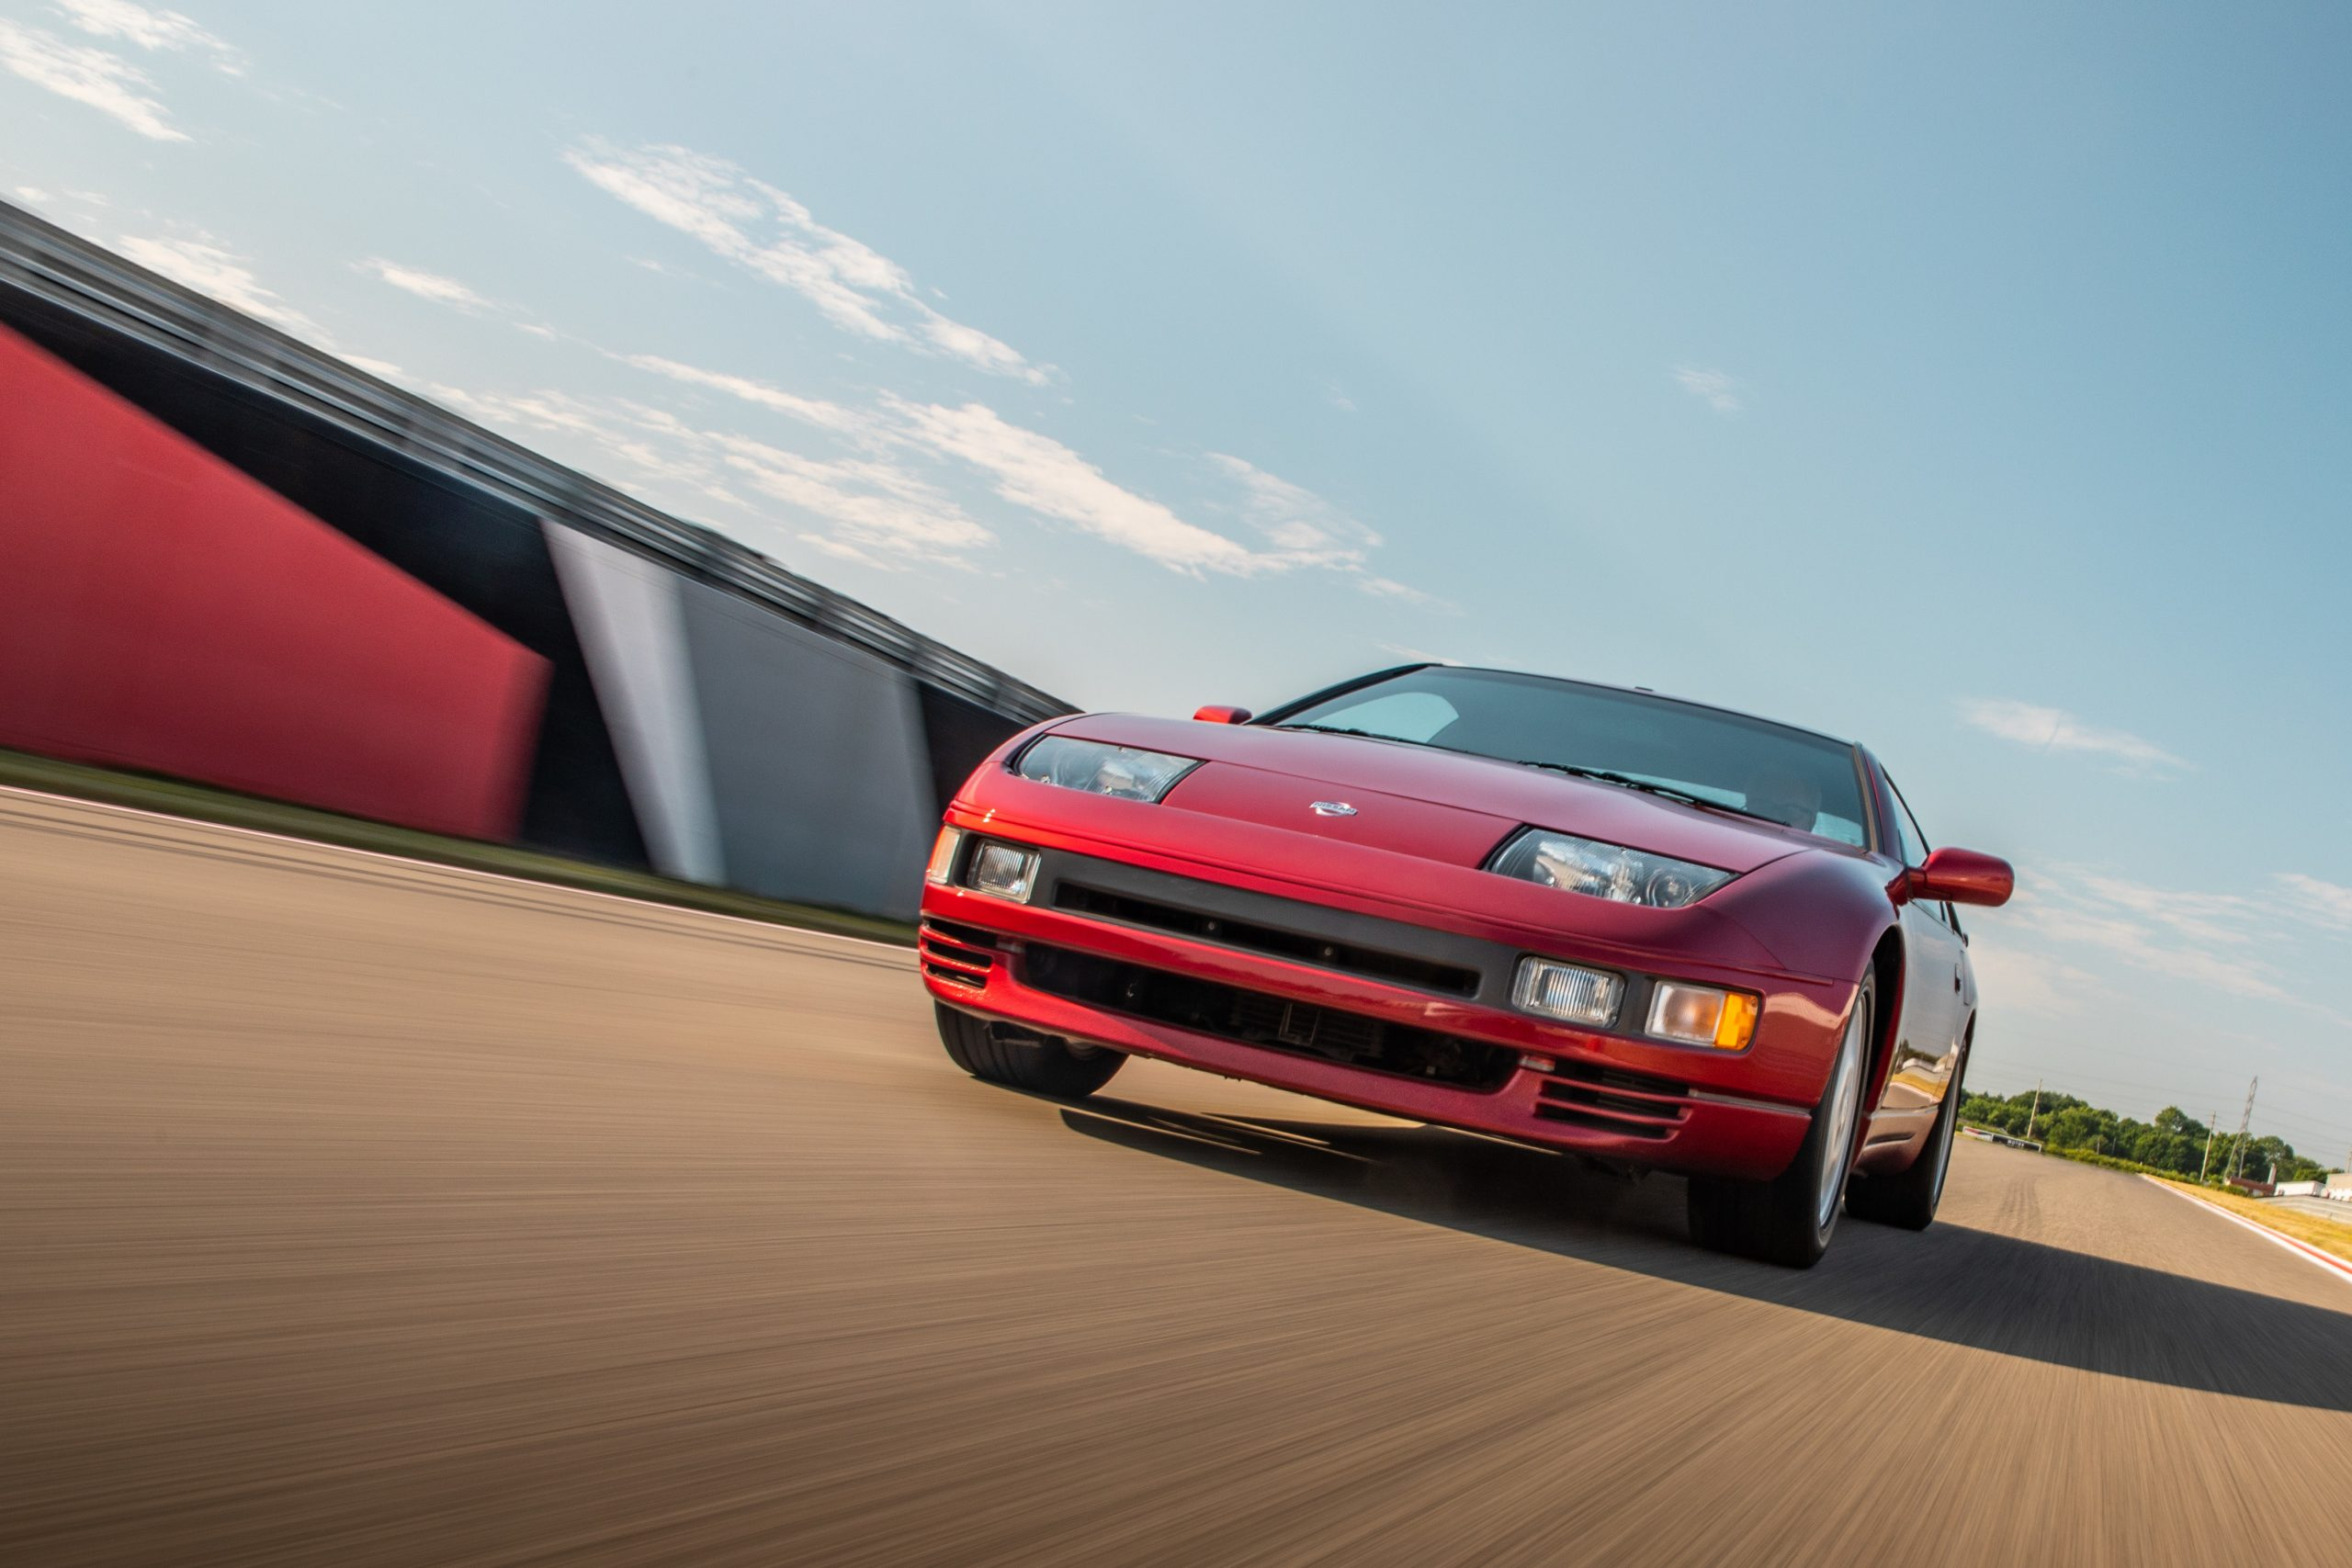 1993 Nissan 300 ZX Red